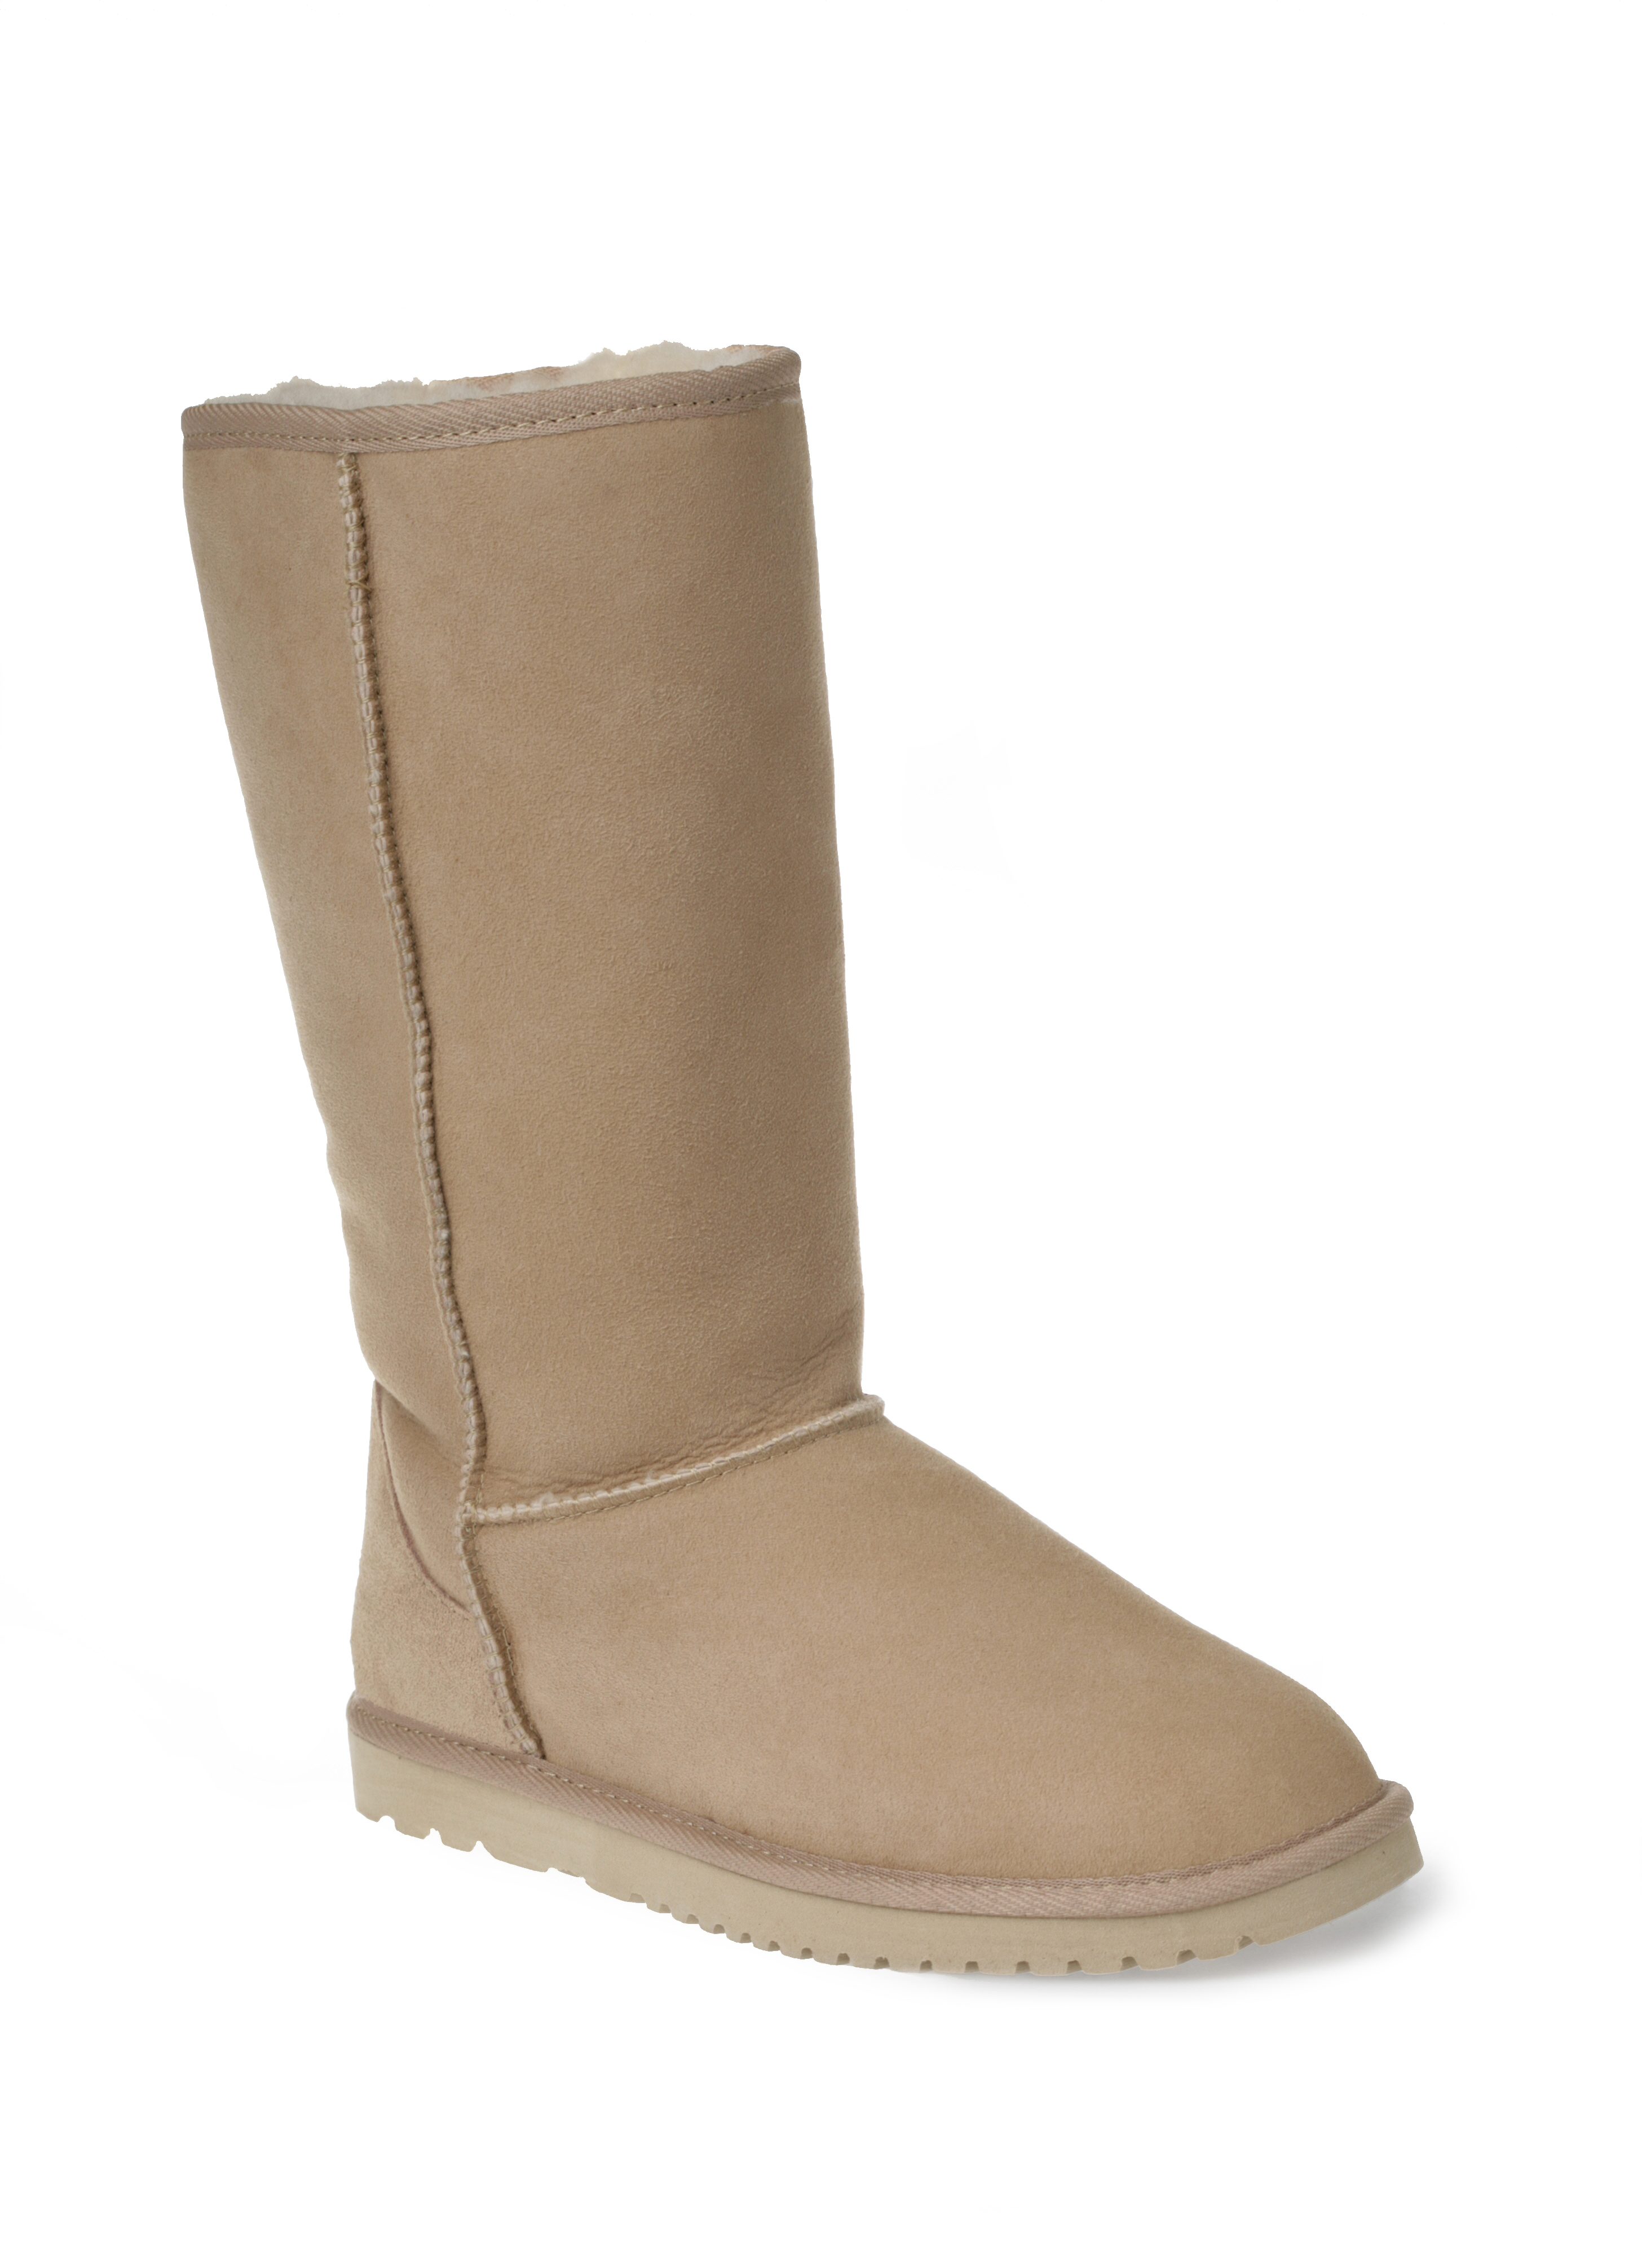 f3a4396cac2 Ugg Boots Of Australia Groupon - cheap watches mgc-gas.com